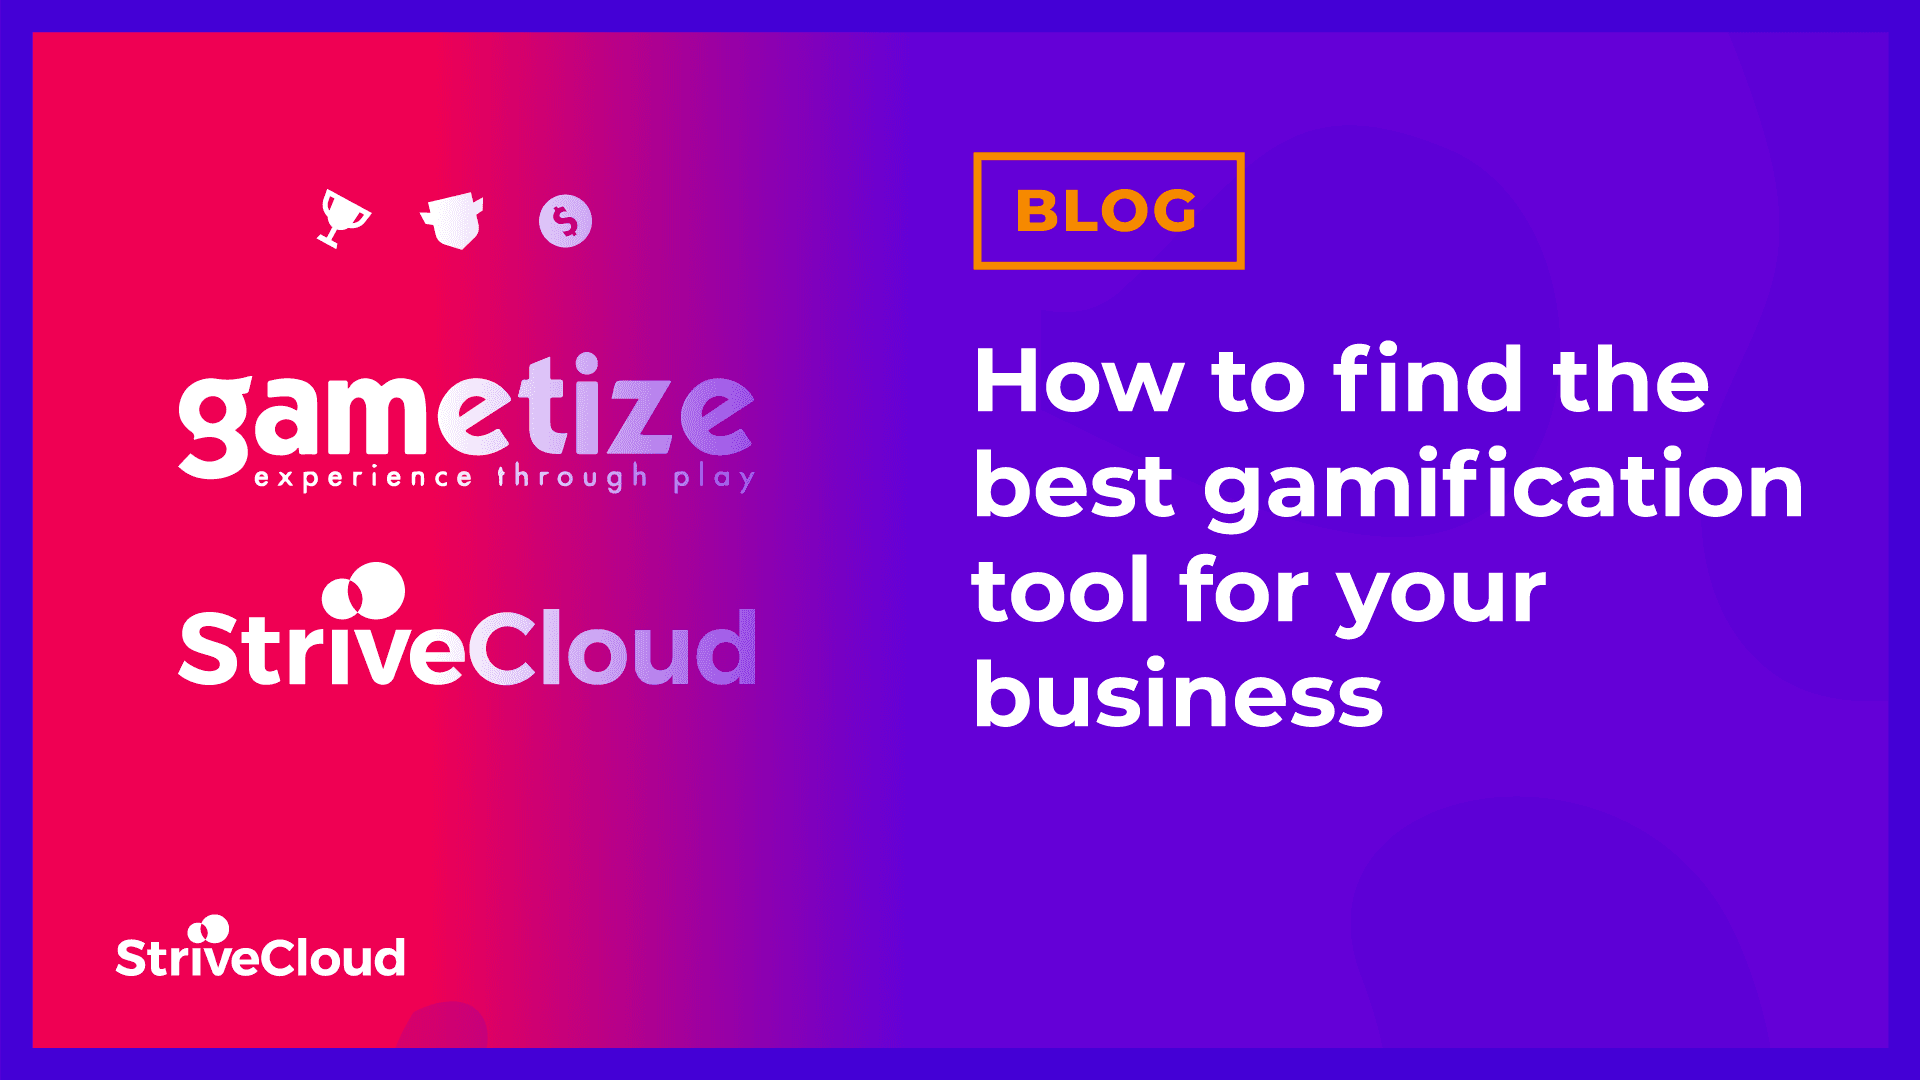 How to find the best gamification tool for your business